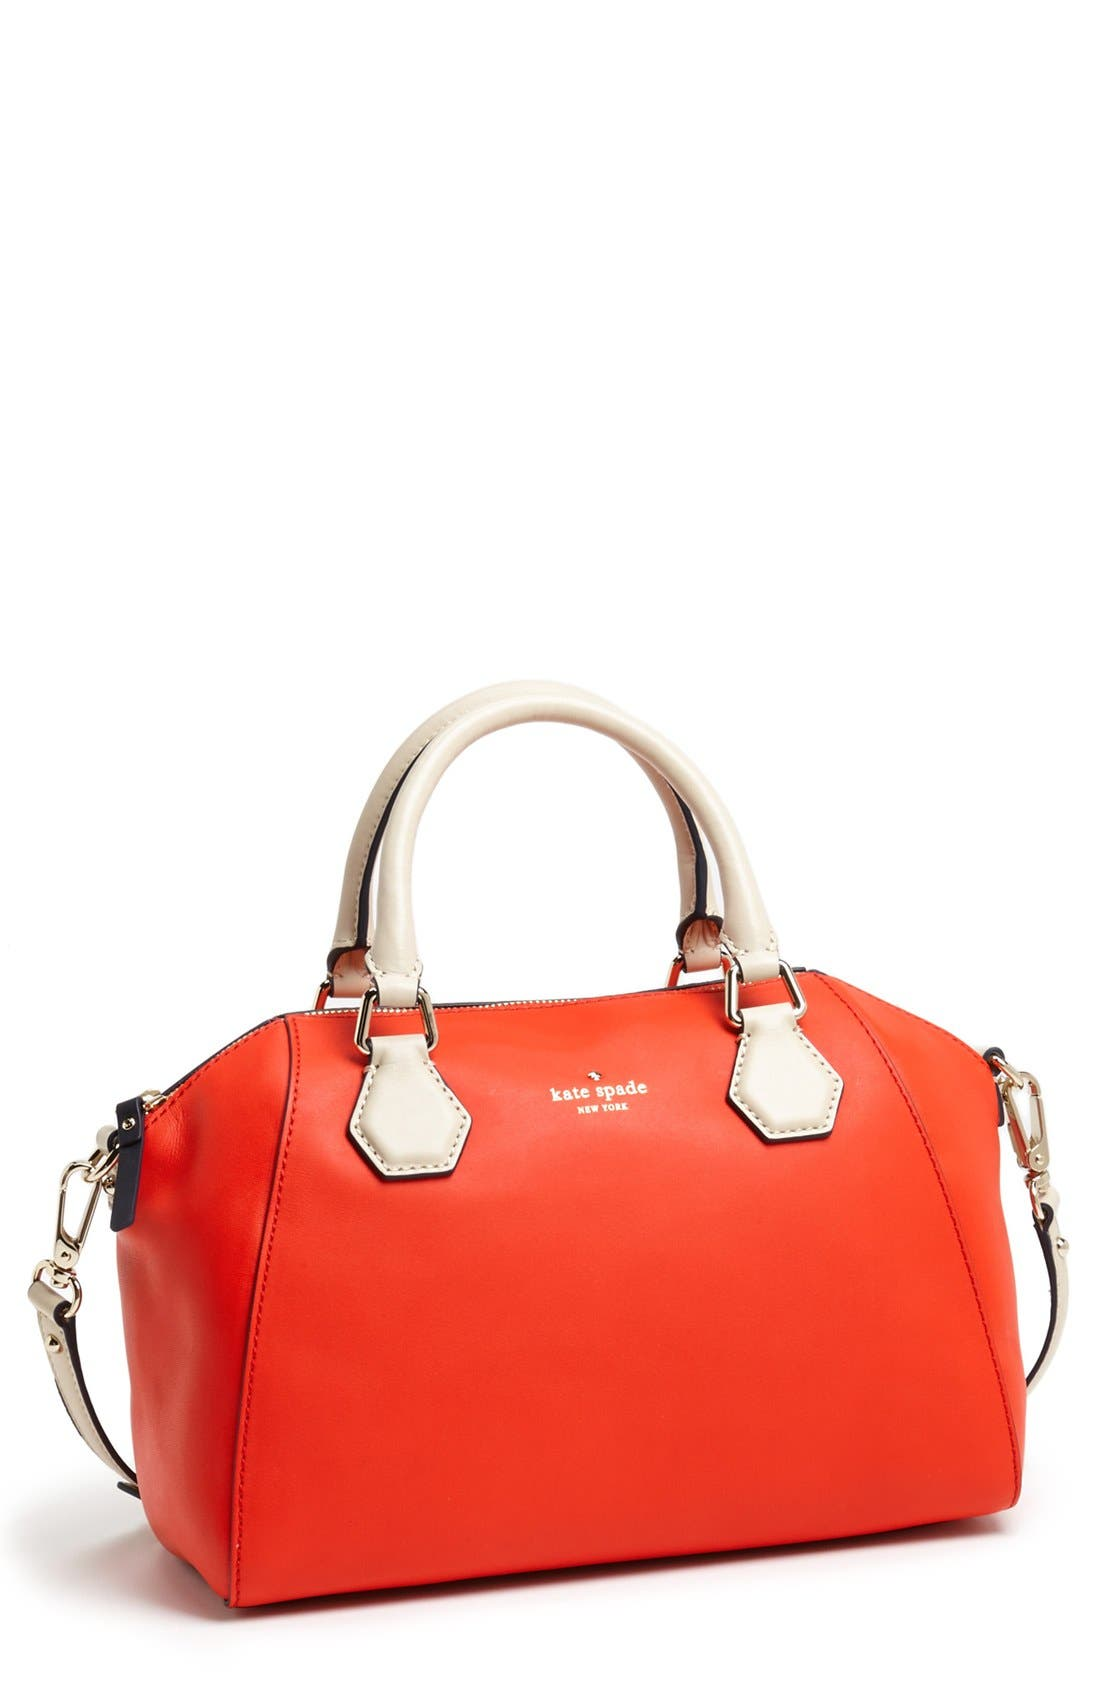 Alternate Image 1 Selected - kate spade new york 'catherine street - pippa' leather satchel